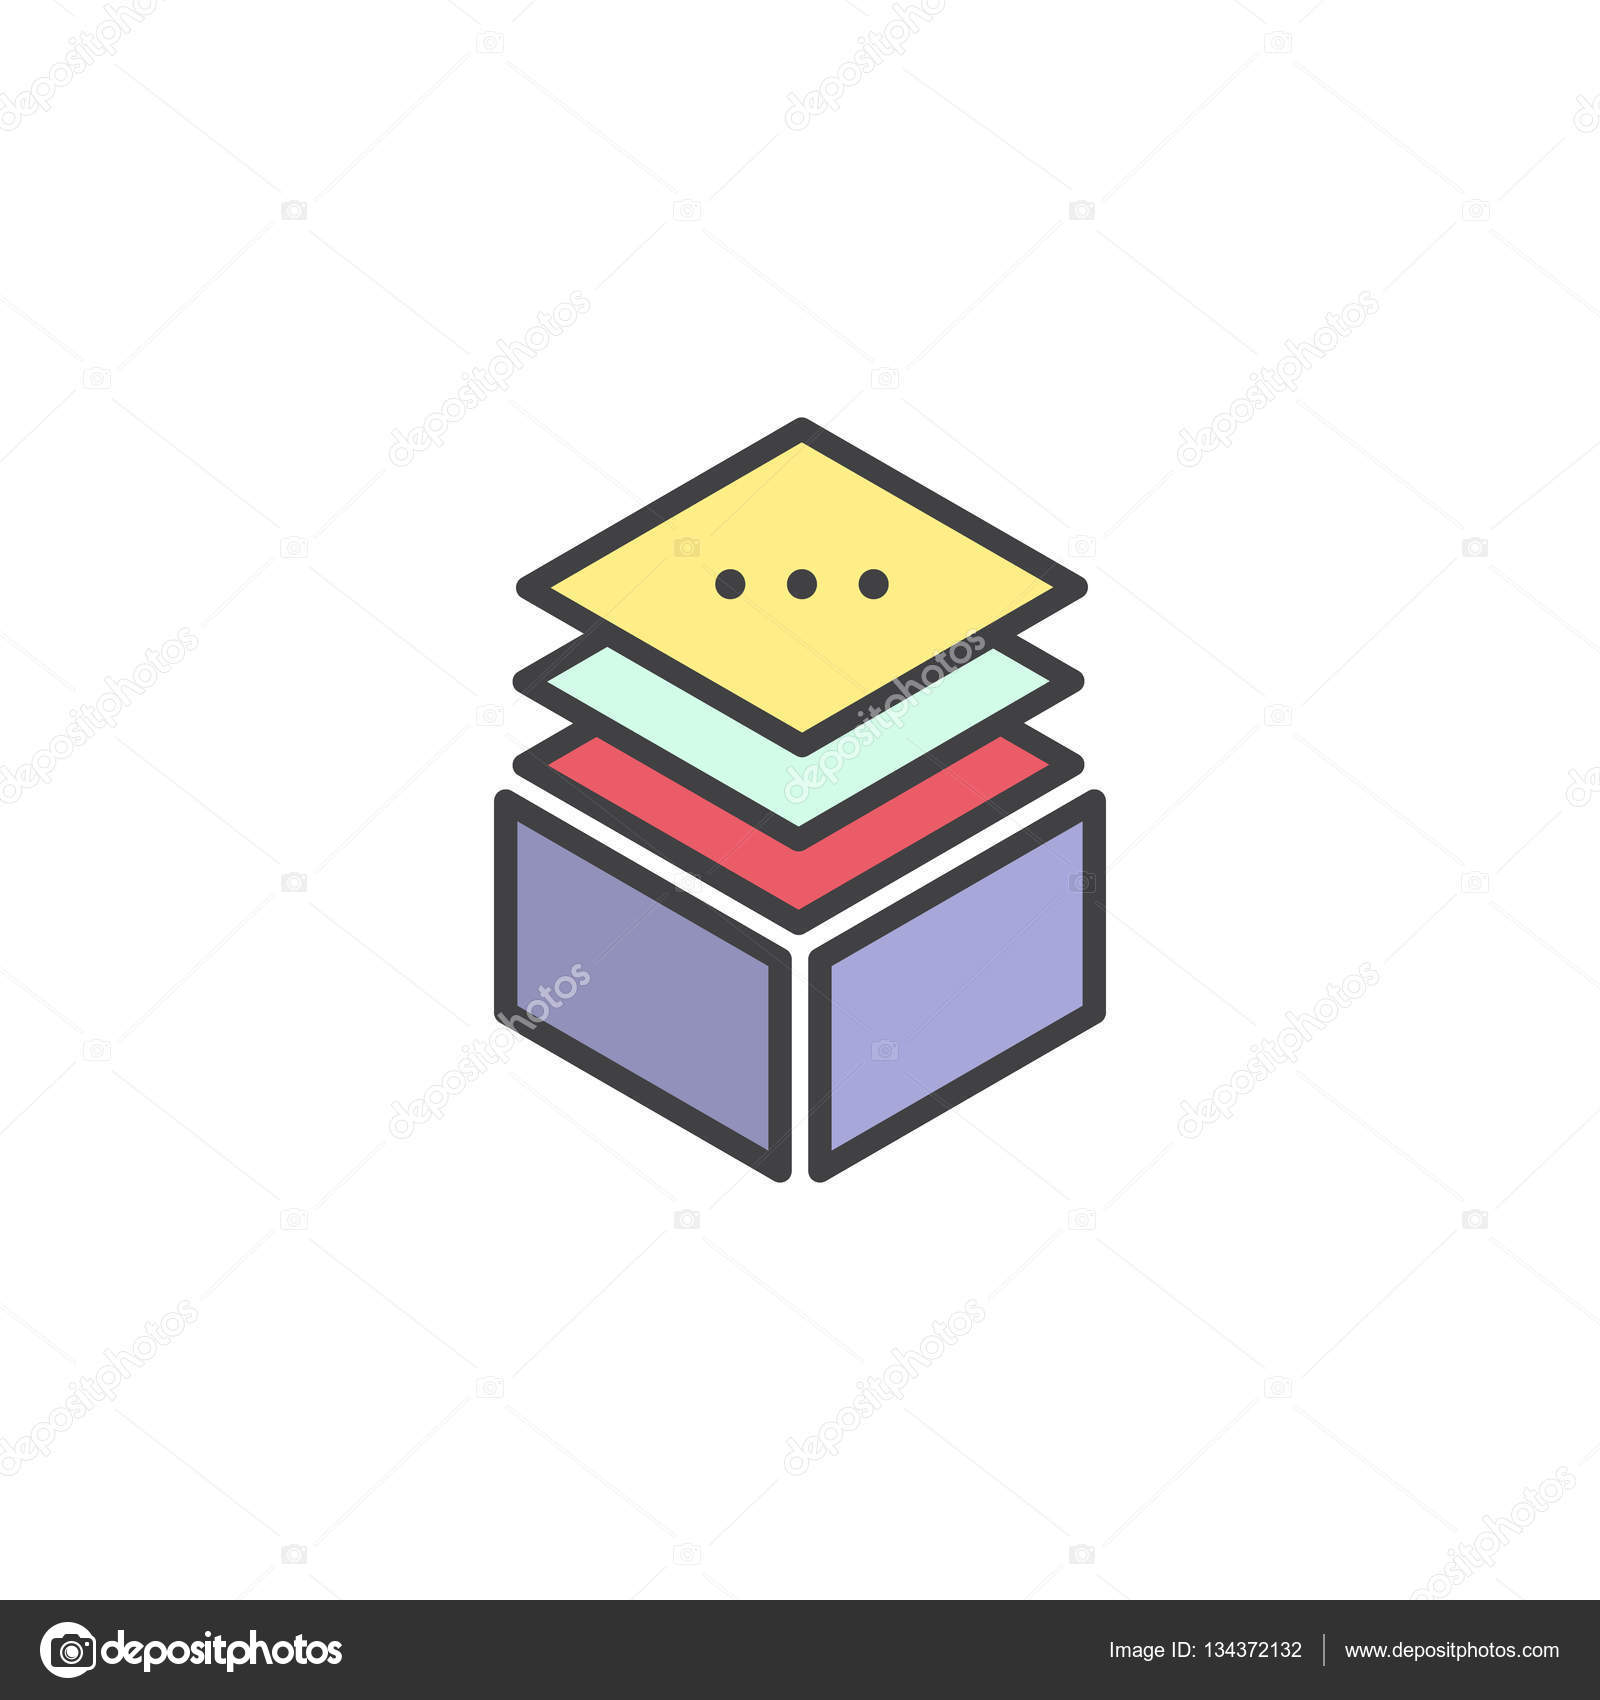 Vector Simple Icon Style Illustration Layered Stacks Showing.